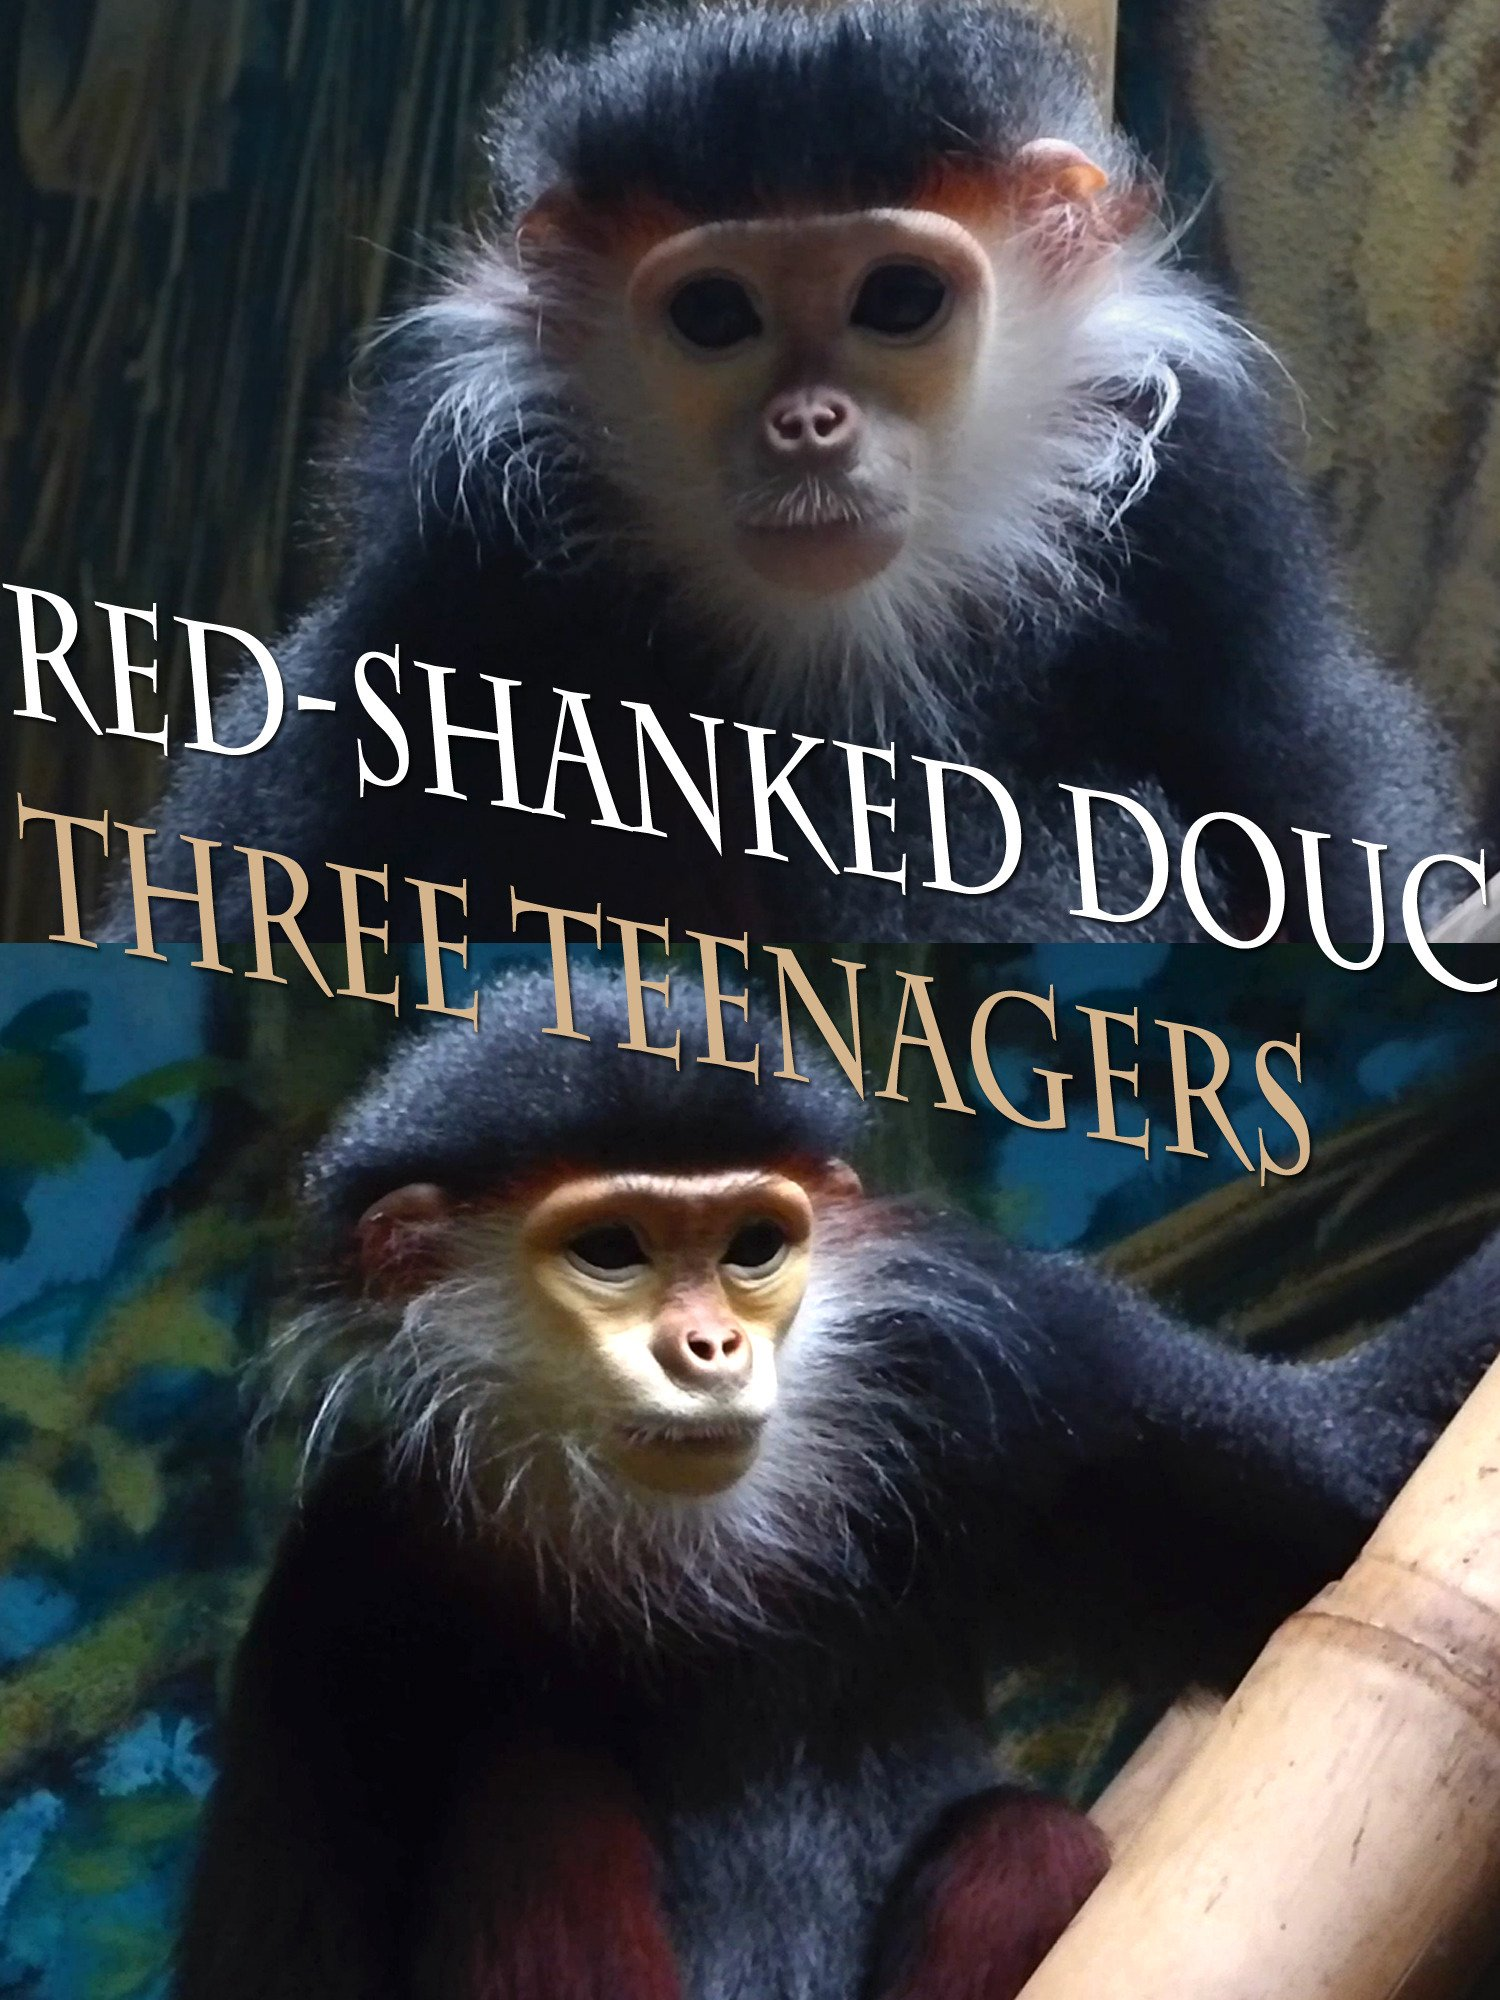 Red-shanked douc. Three teenagers on Amazon Prime Instant Video UK